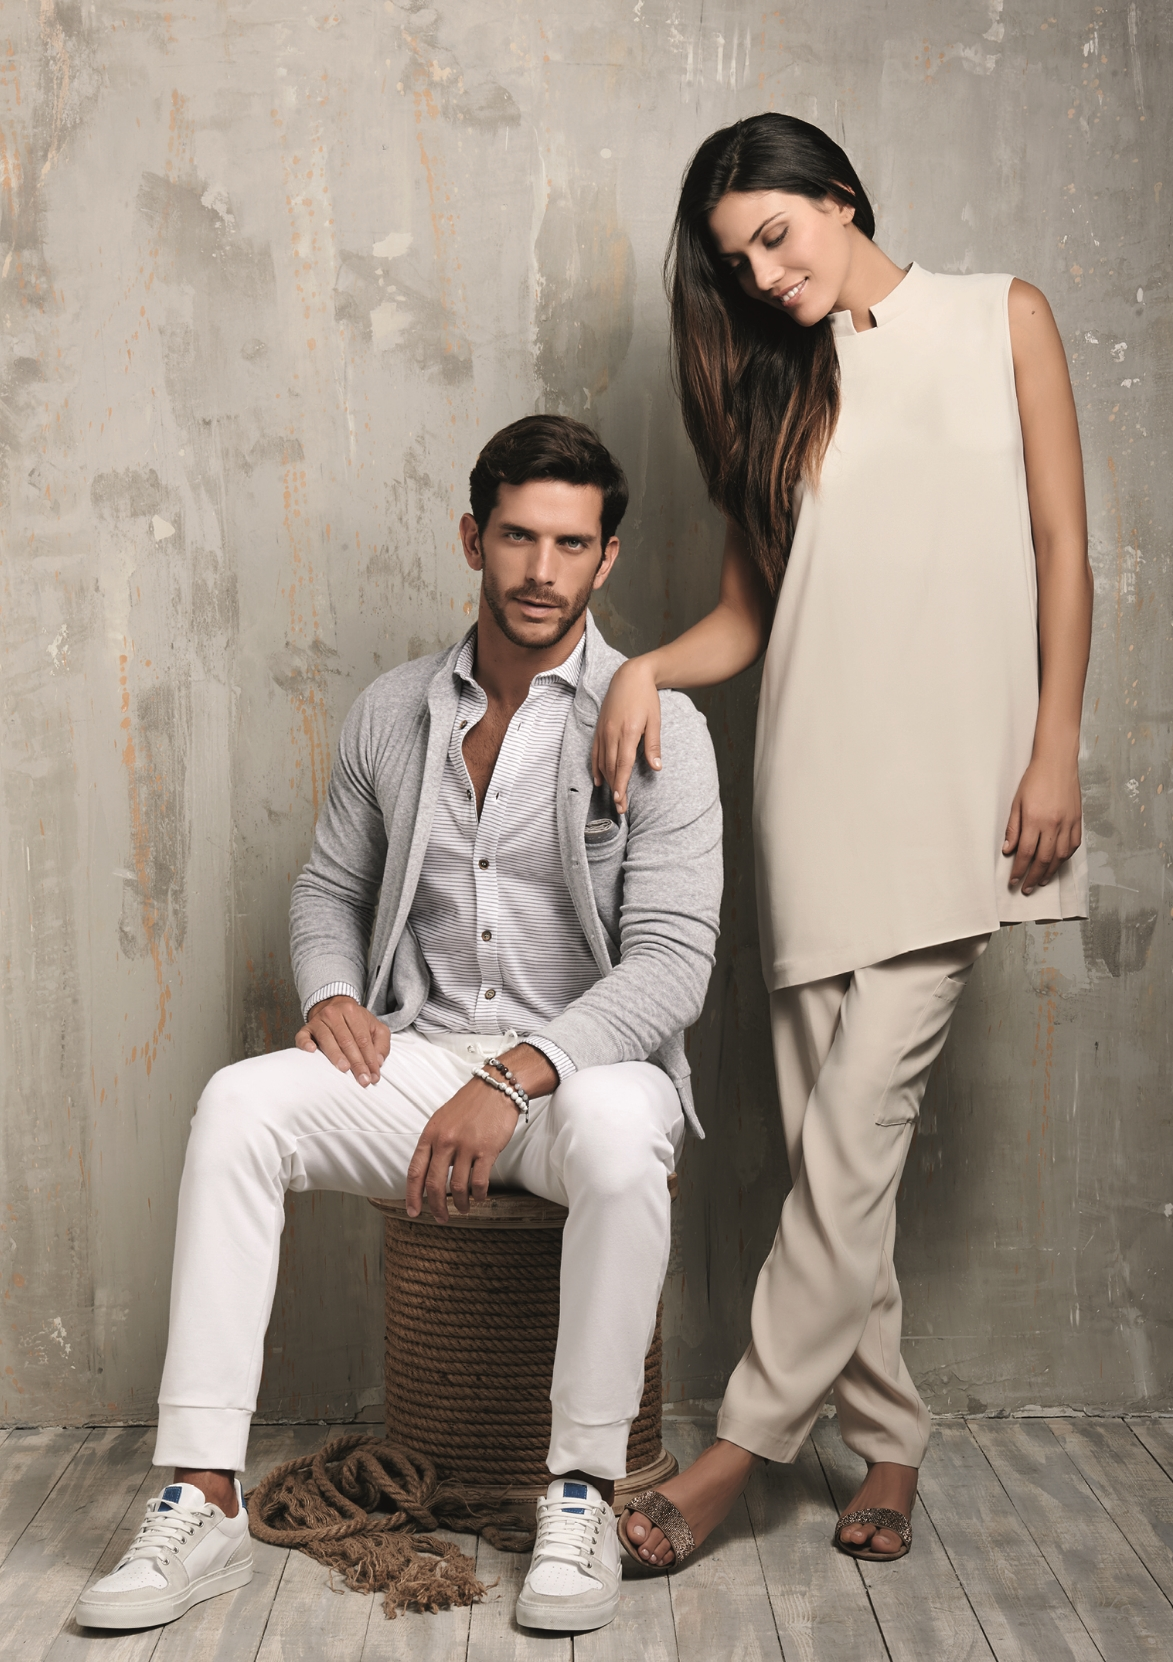 SS16- Donna and Uomo.jpg